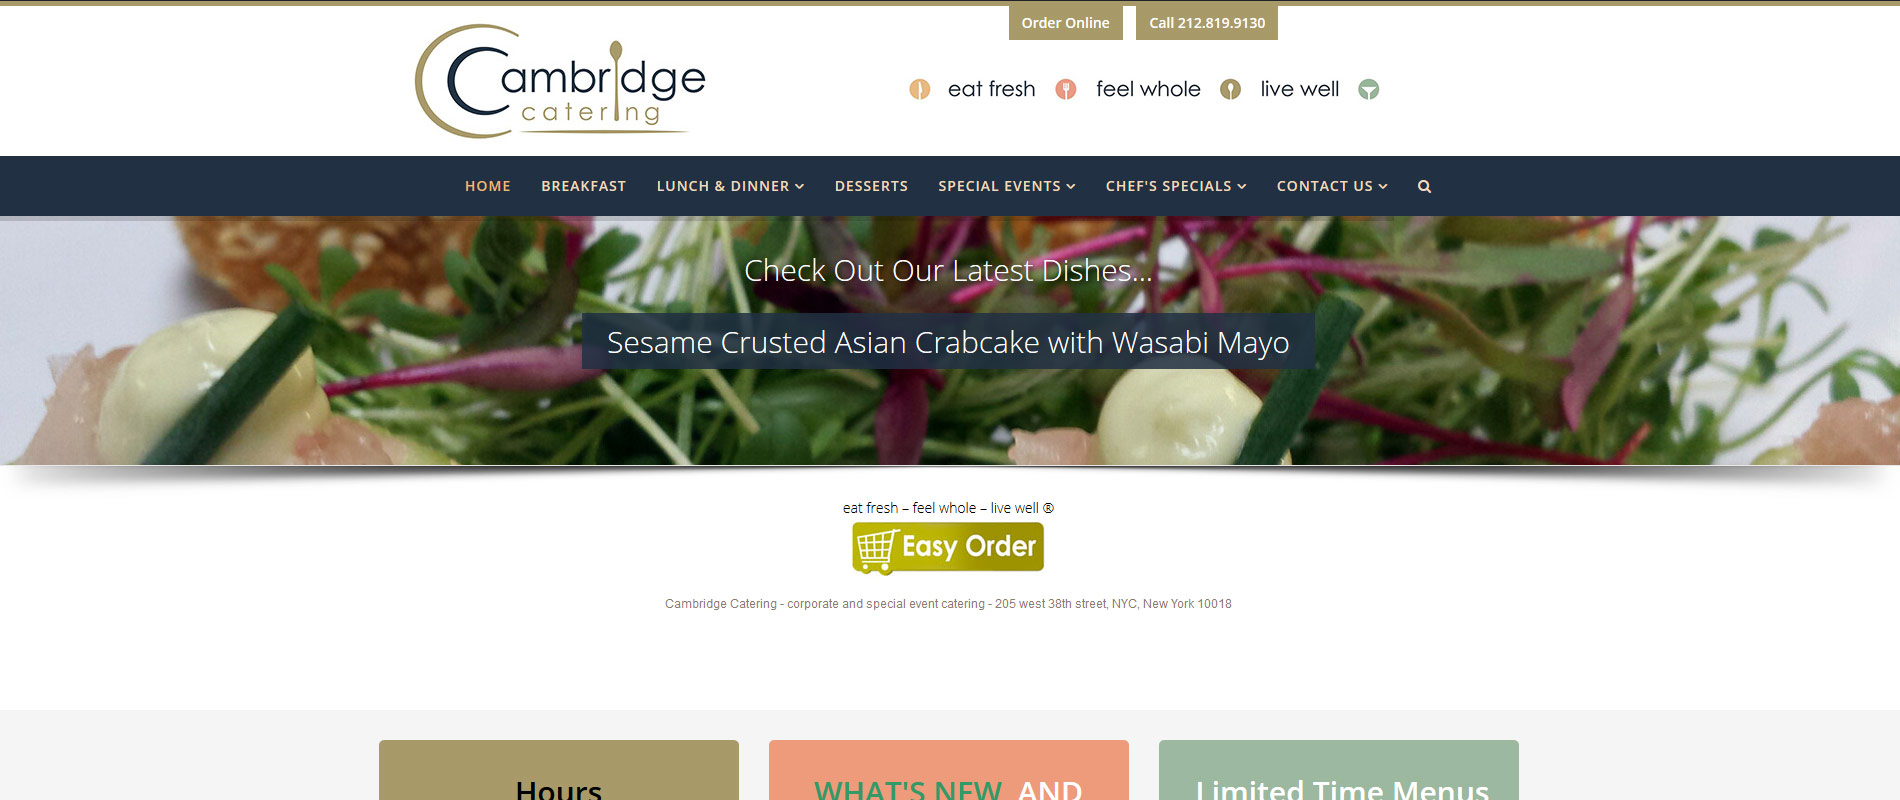 Cambridge Catering